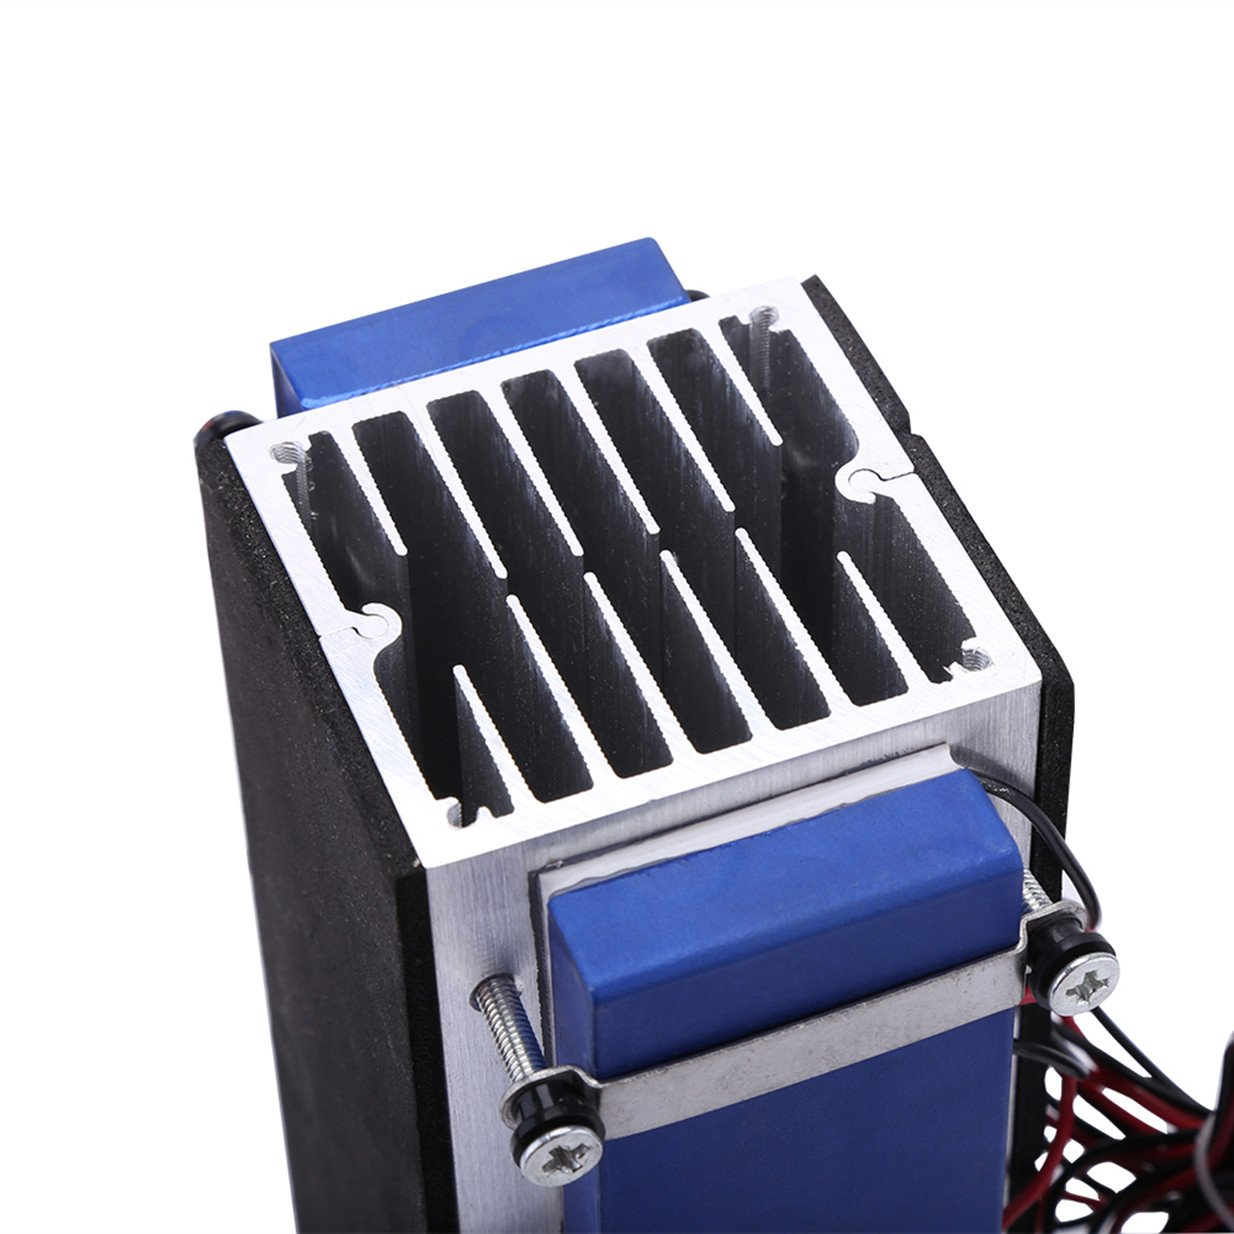 Mini Air Conditioner,DC 12V 576W 8-Chip TEC1-12706 DIY Thermoelectric Cooler Air Cooling Device by Walfront (Image #5)